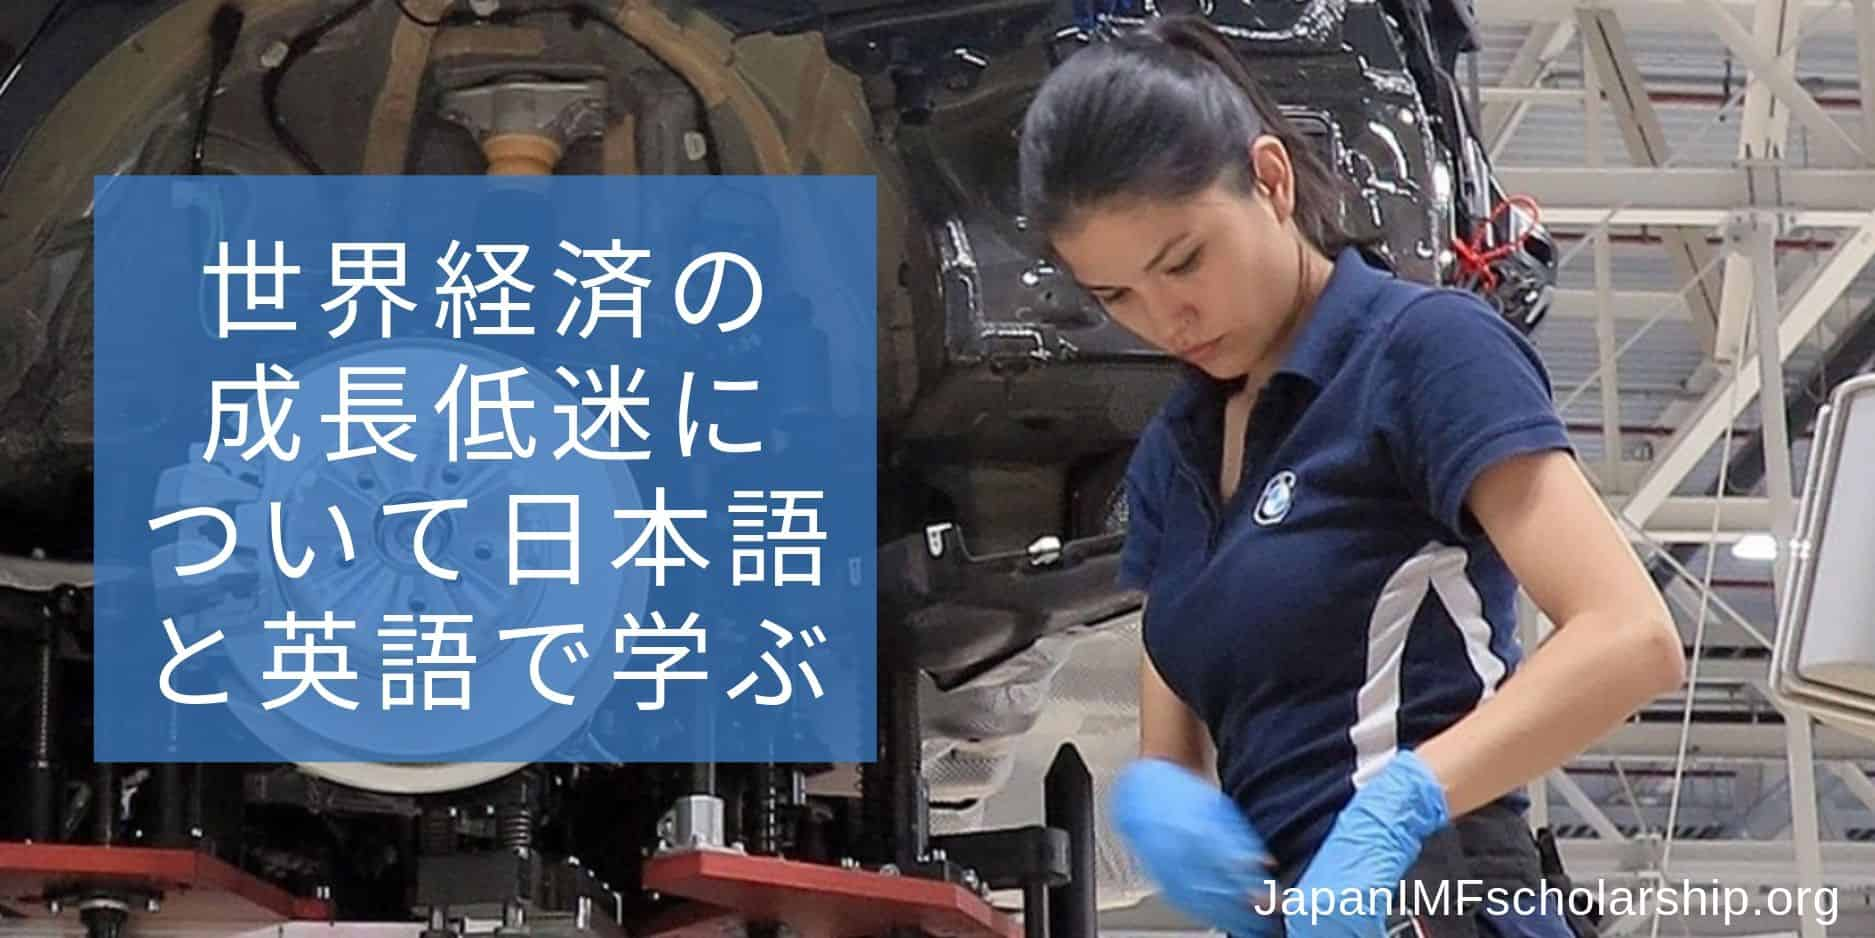 jisp web learning about imf world economic outlook update july 2019 in english and japanese